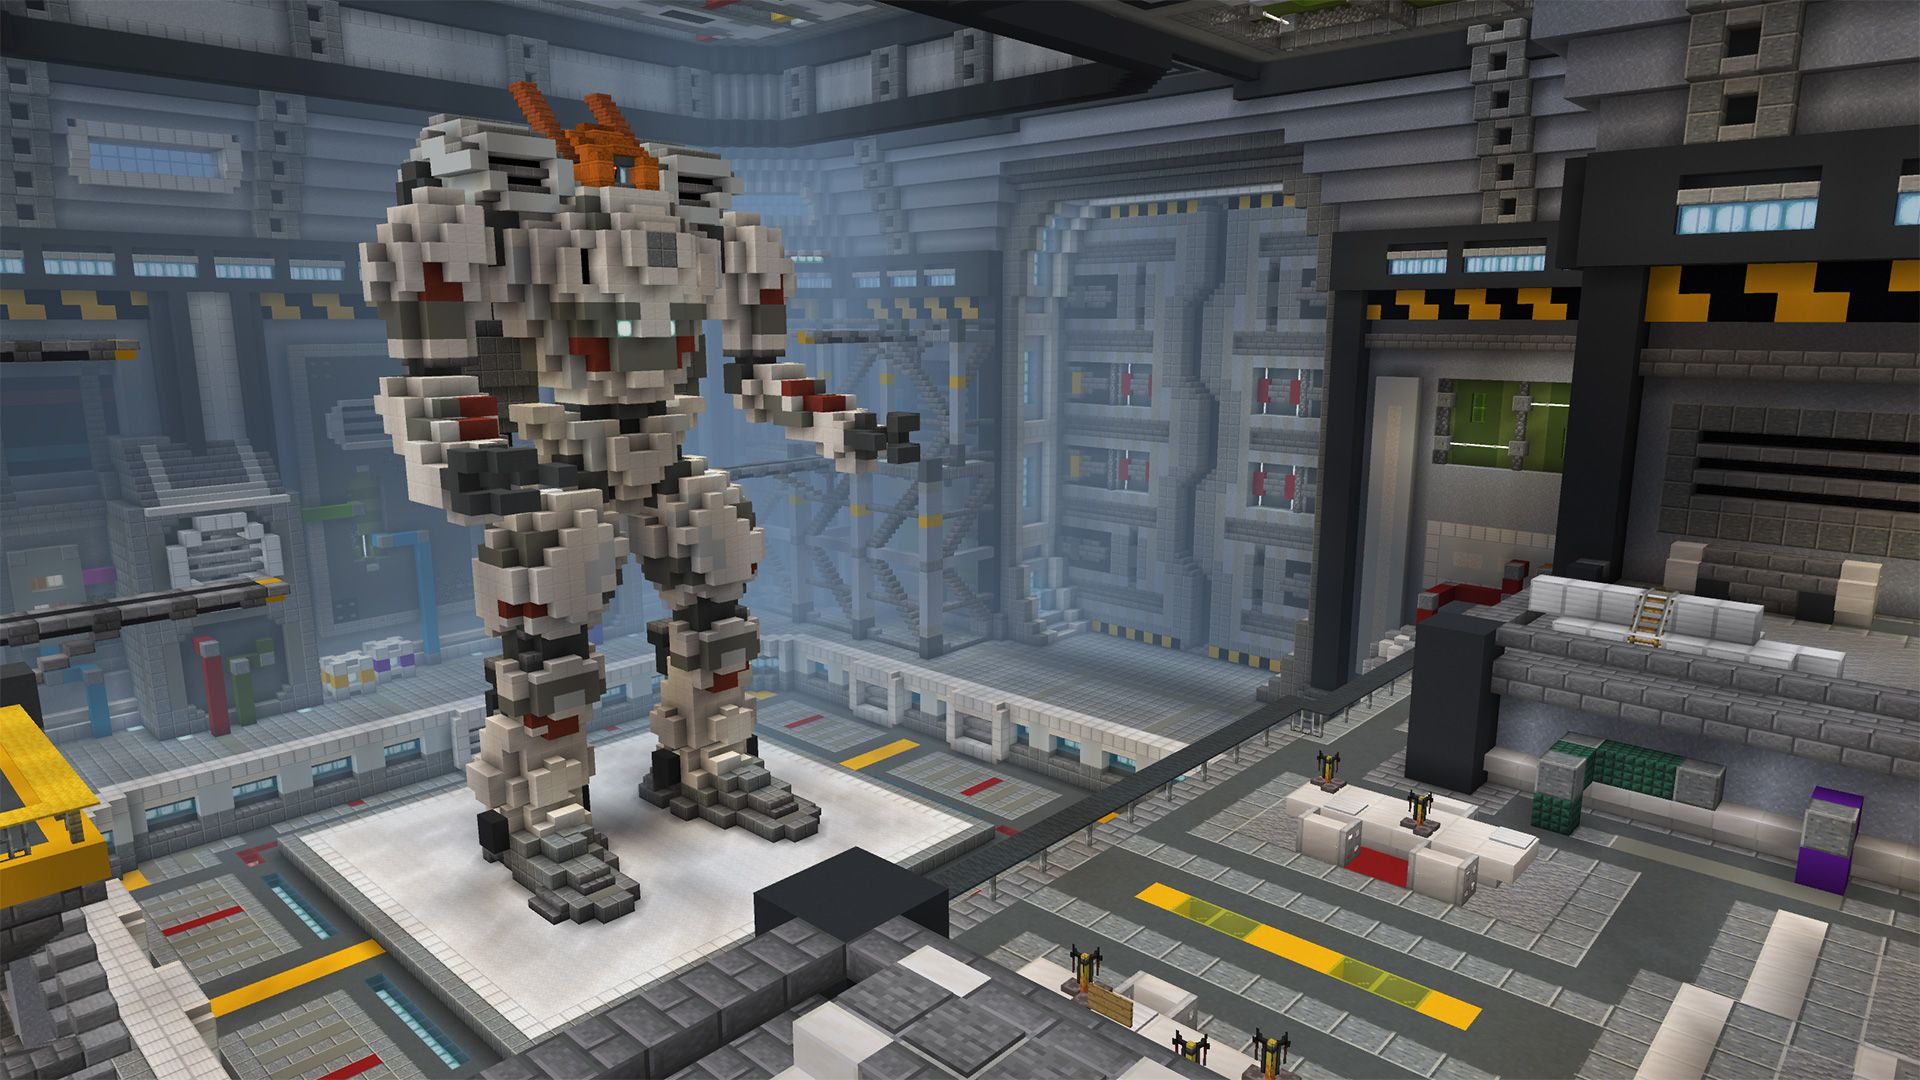 A large robot built out of various blocks in Minecraft.